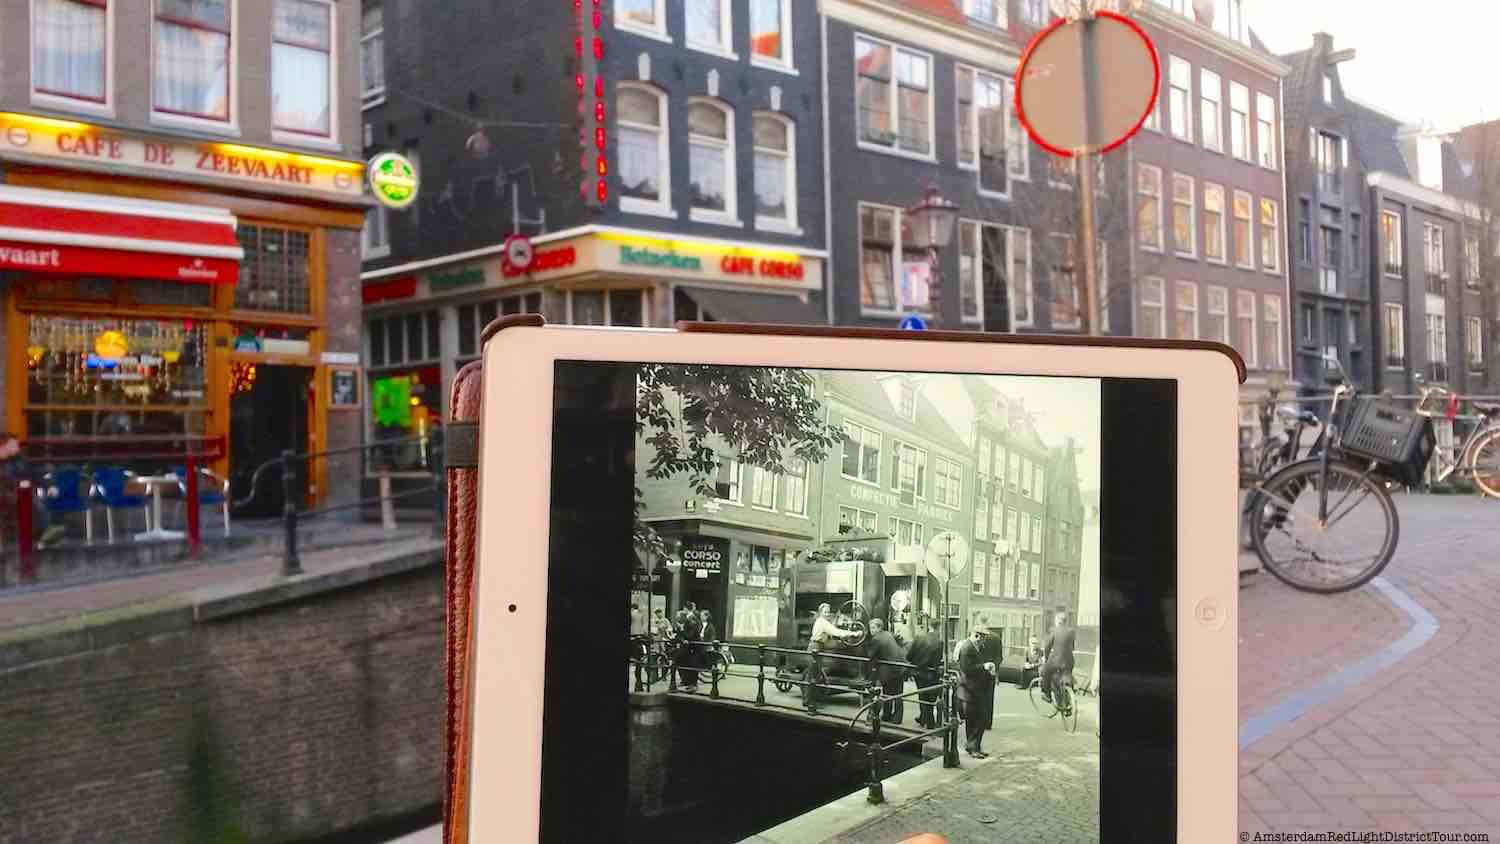 Amsterdam Red Light District Now and Then: Street Organ at Cafe Zeevaart